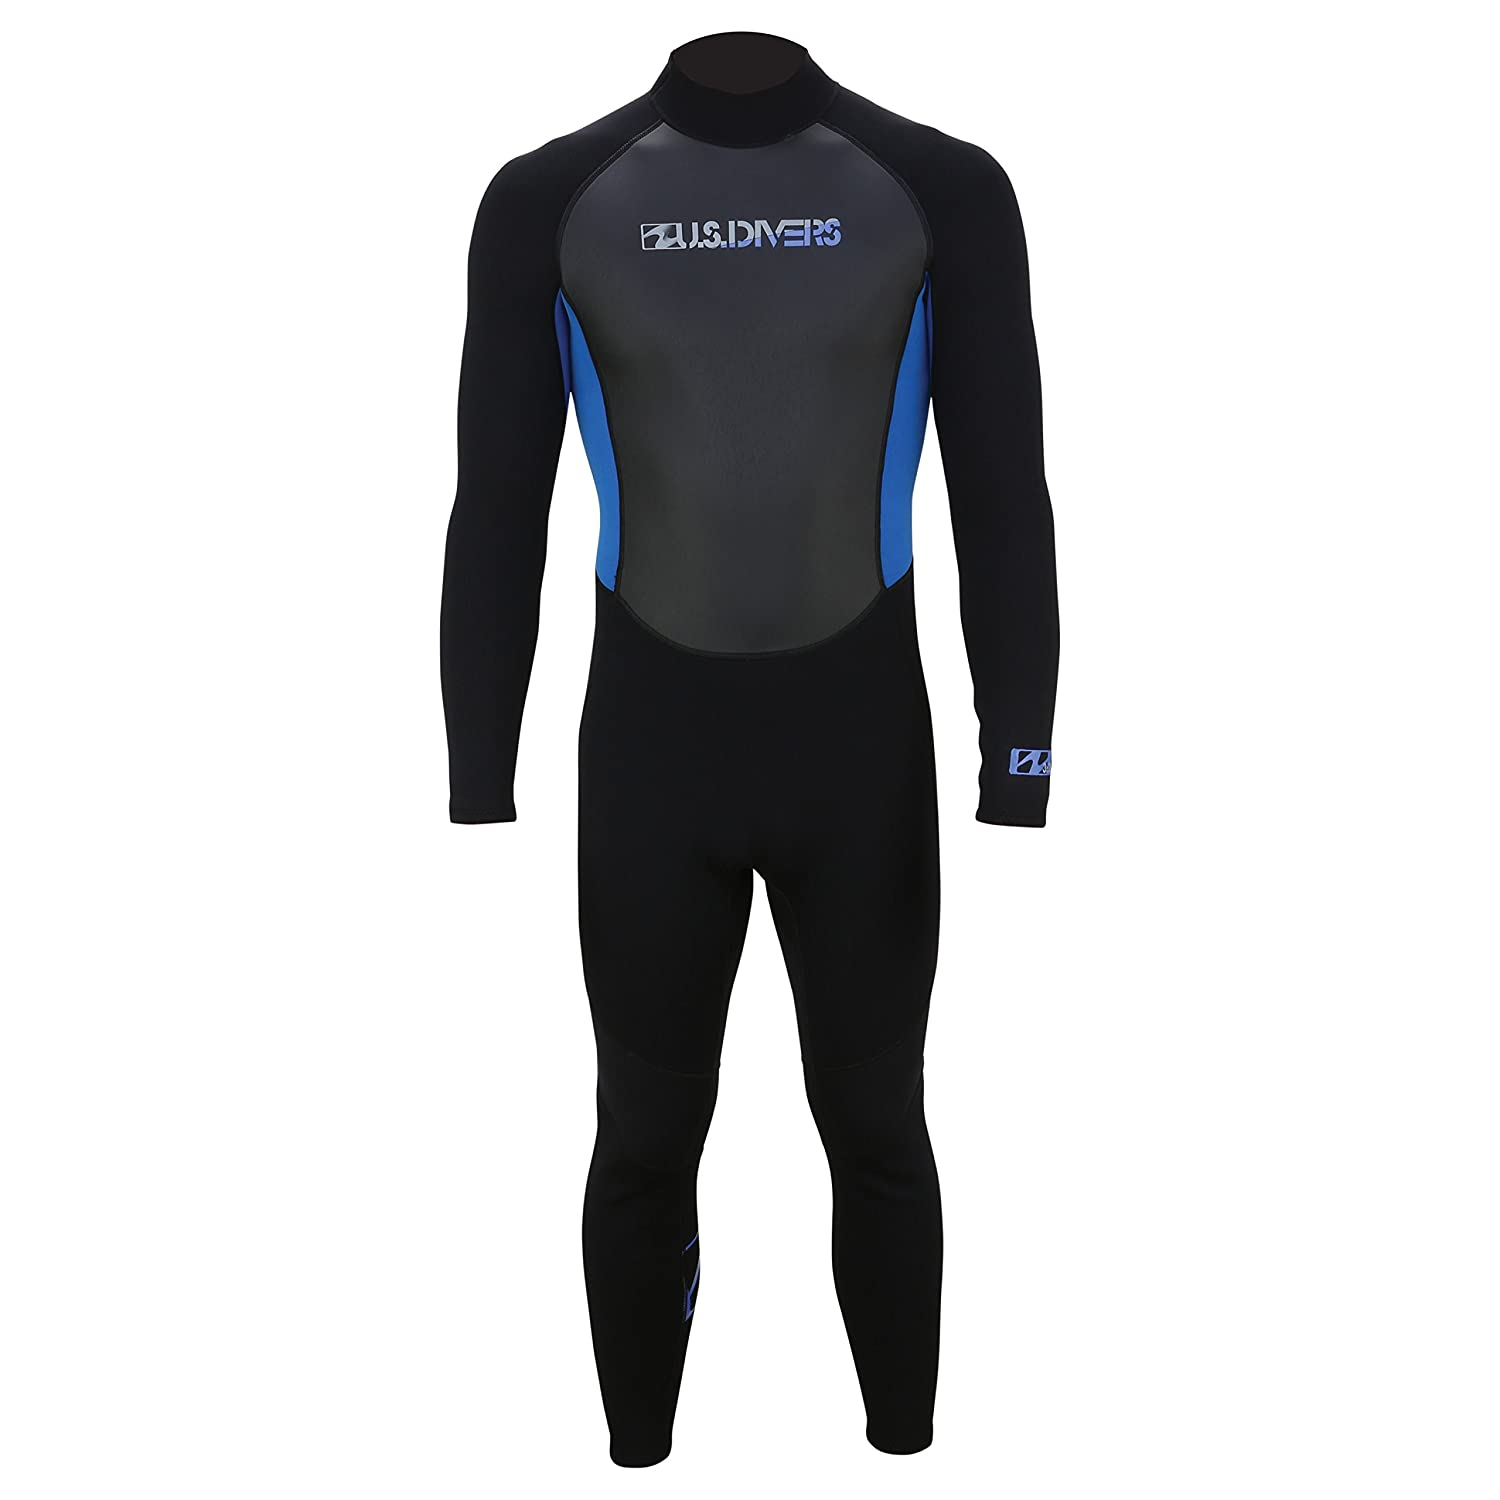 Image of Diving Suits U.S. Divers Adult 2015 Full Wetsuit, Black/Blue, X-Large